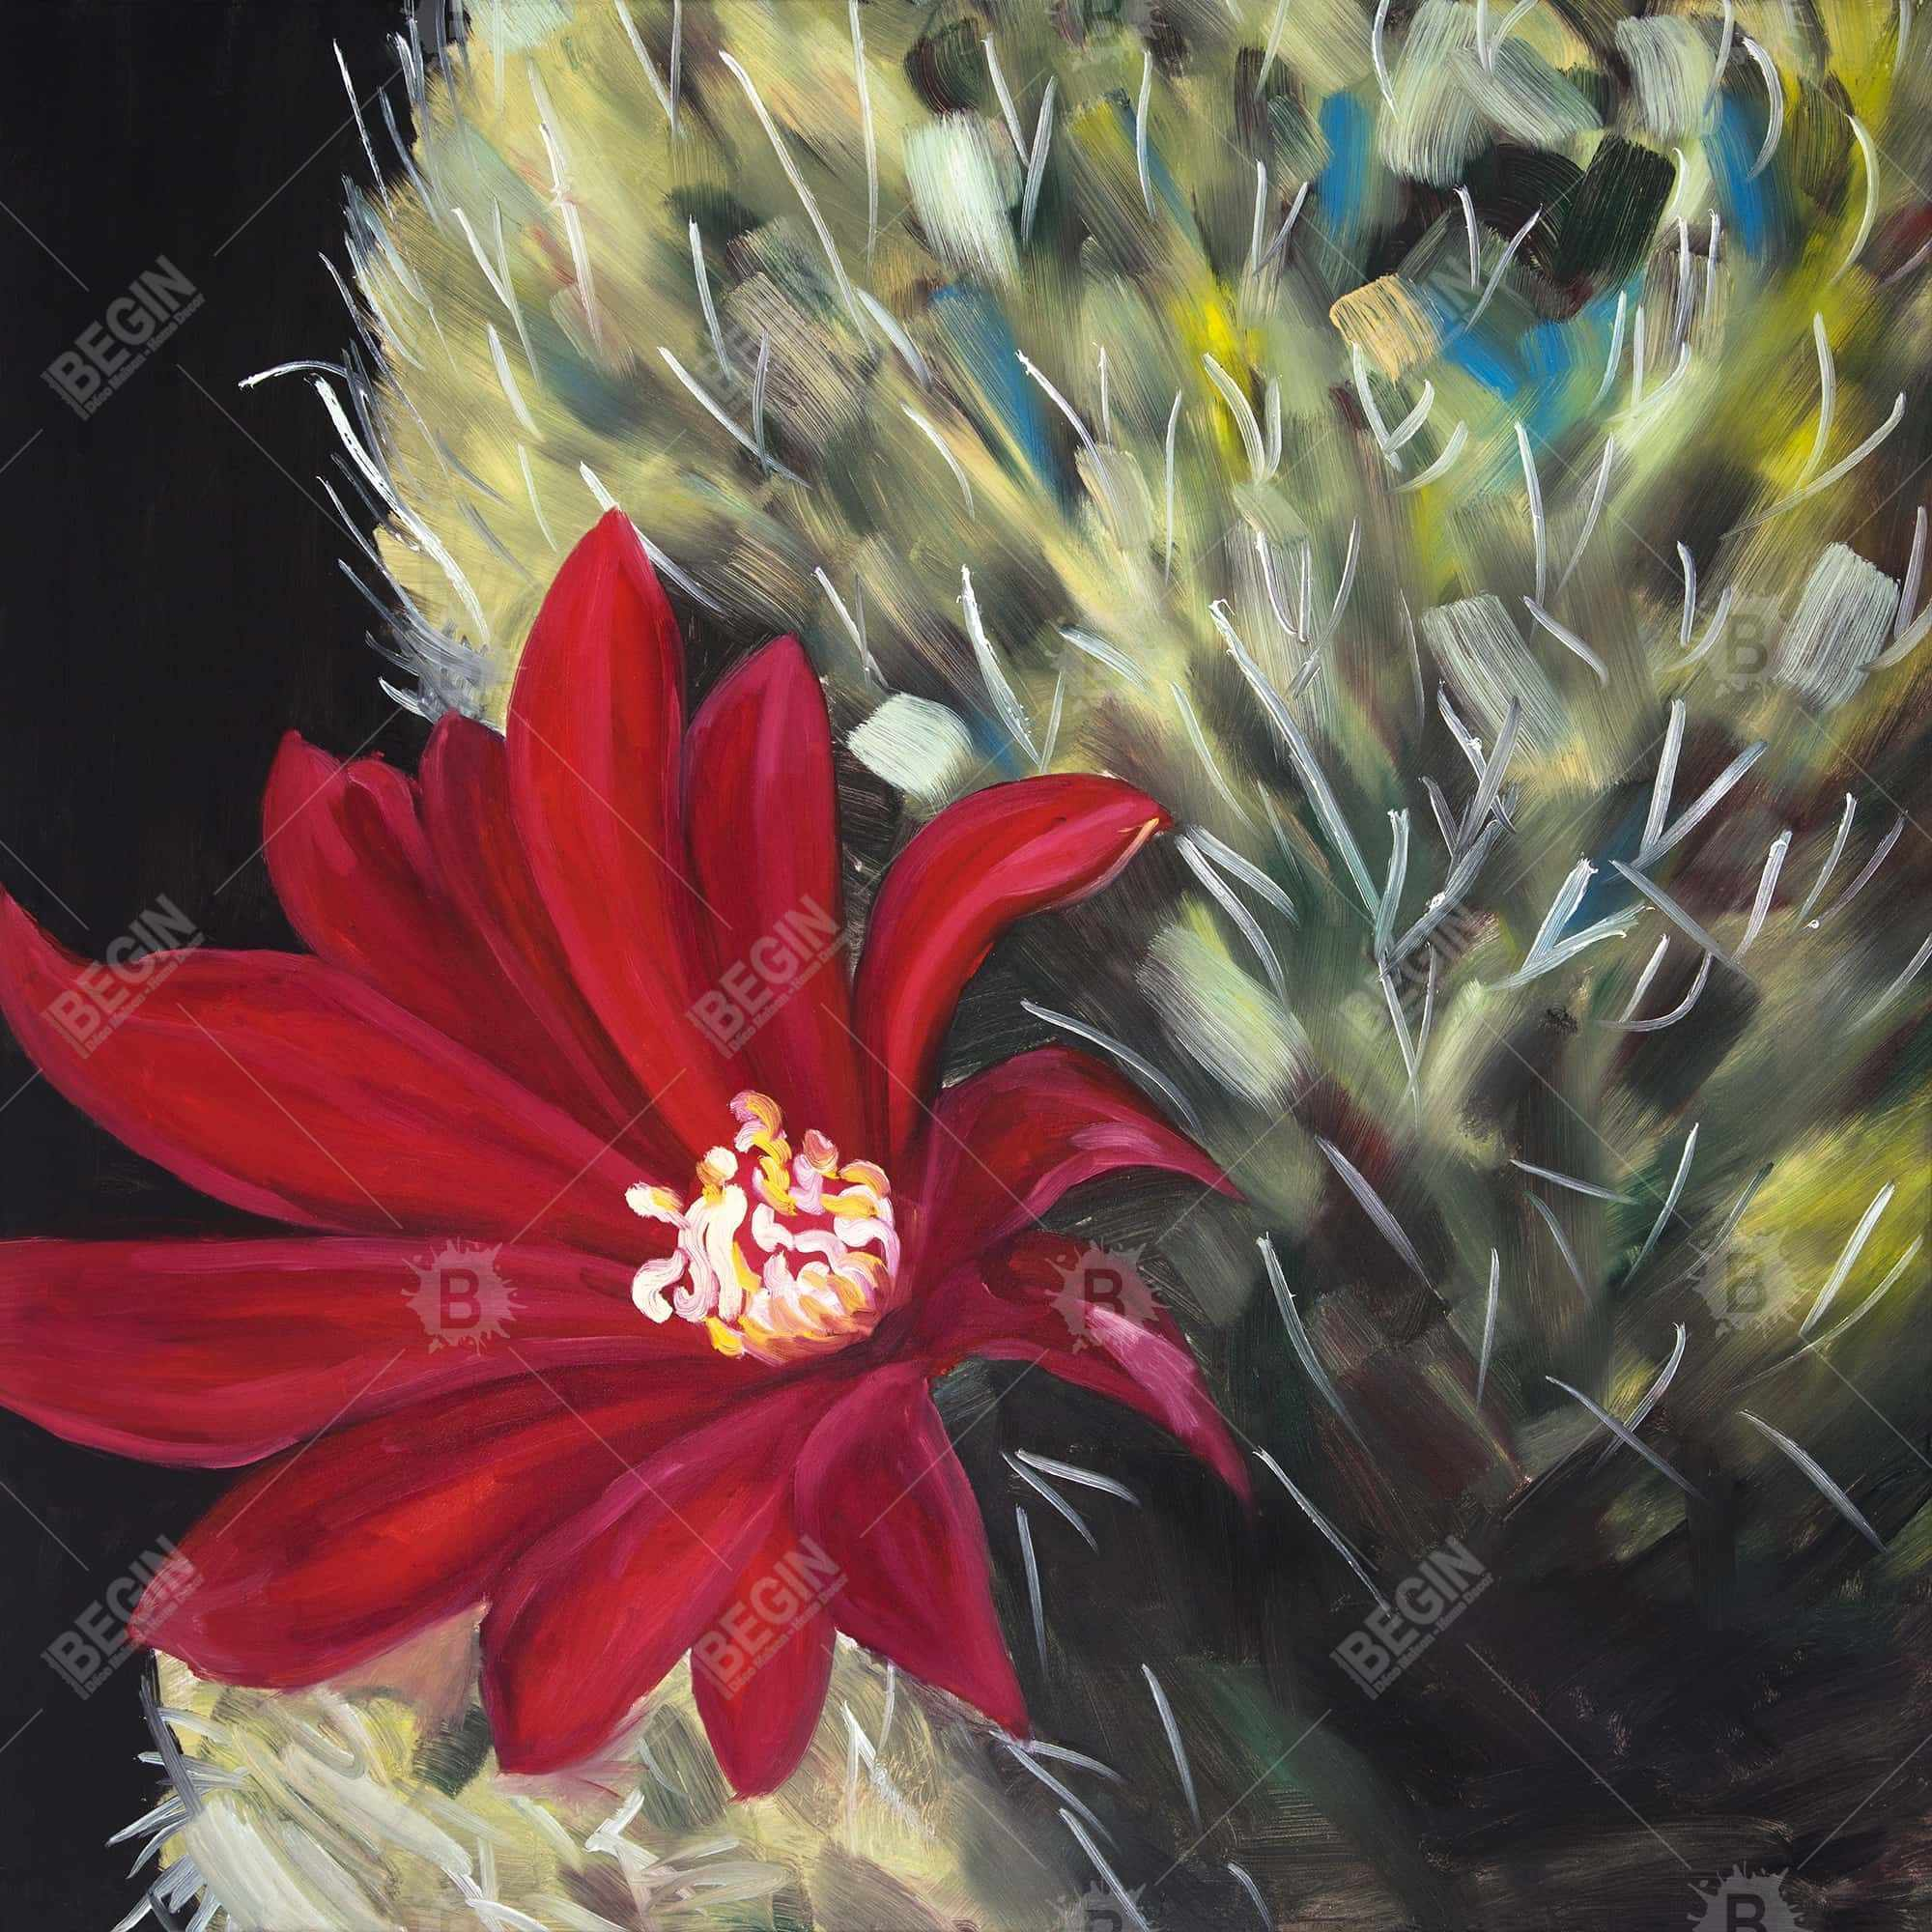 Echinopsis red cactus flower